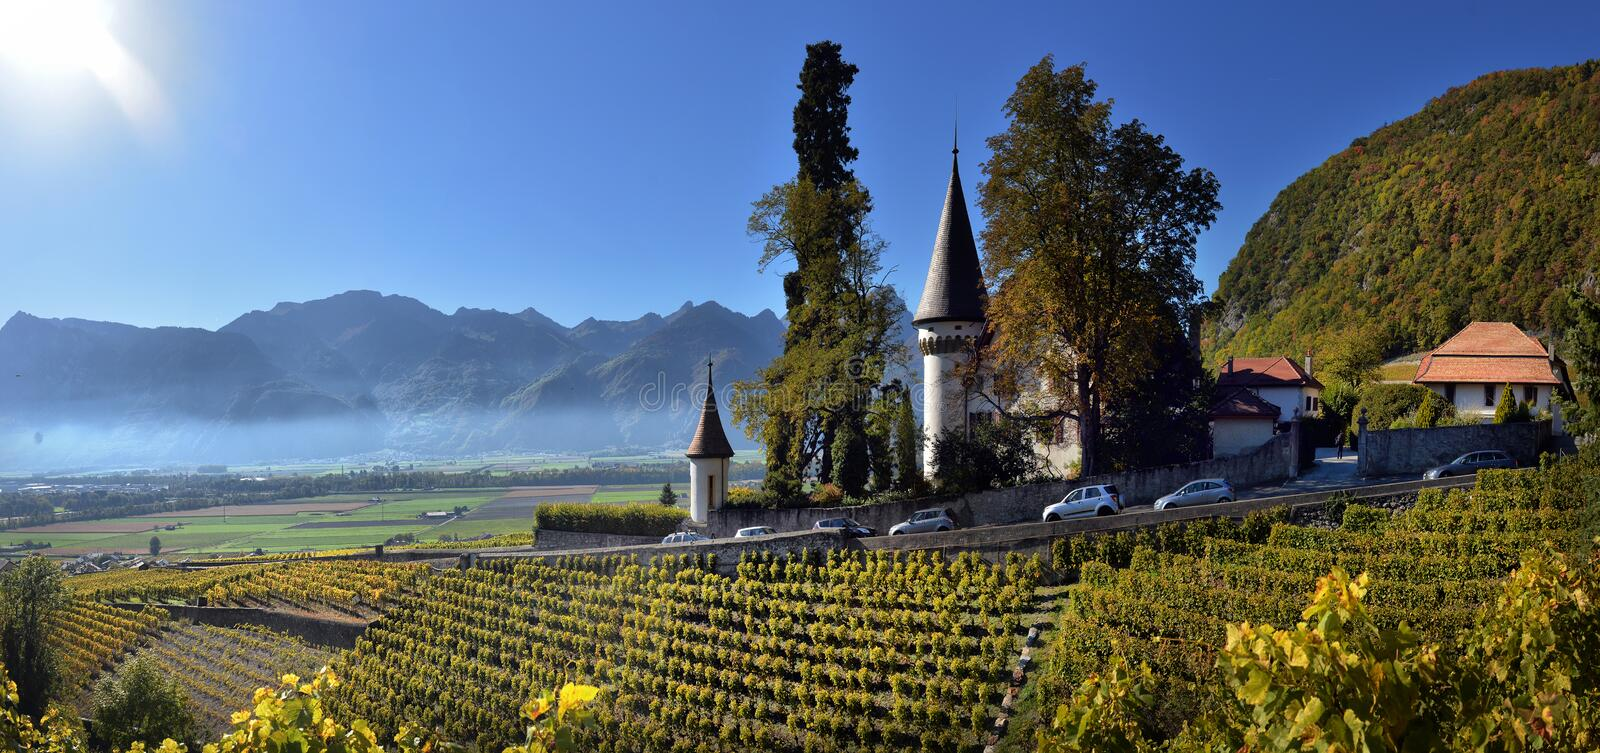 Famous castle Chateau maison blanche in canton Vaud. Switzerland, SWISS royalty free stock photography